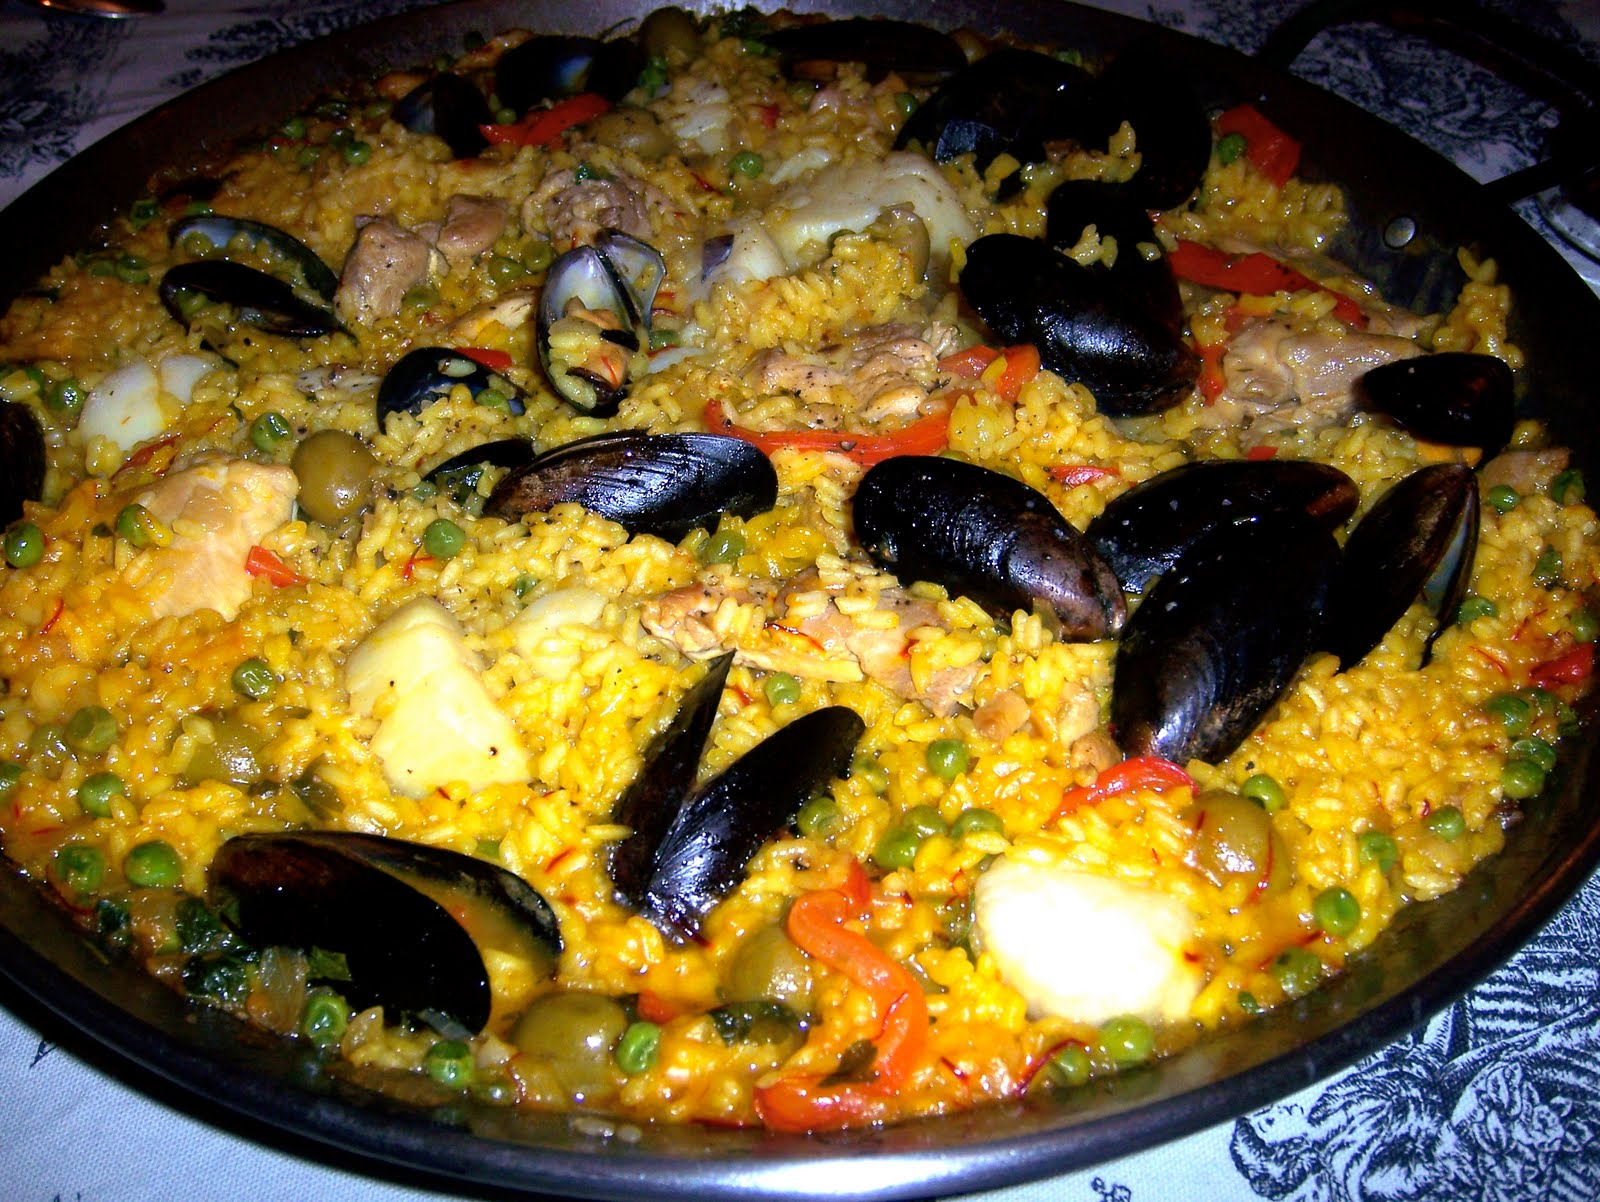 AROUND THE TABLE WITH LORETTA: Seafood Paella